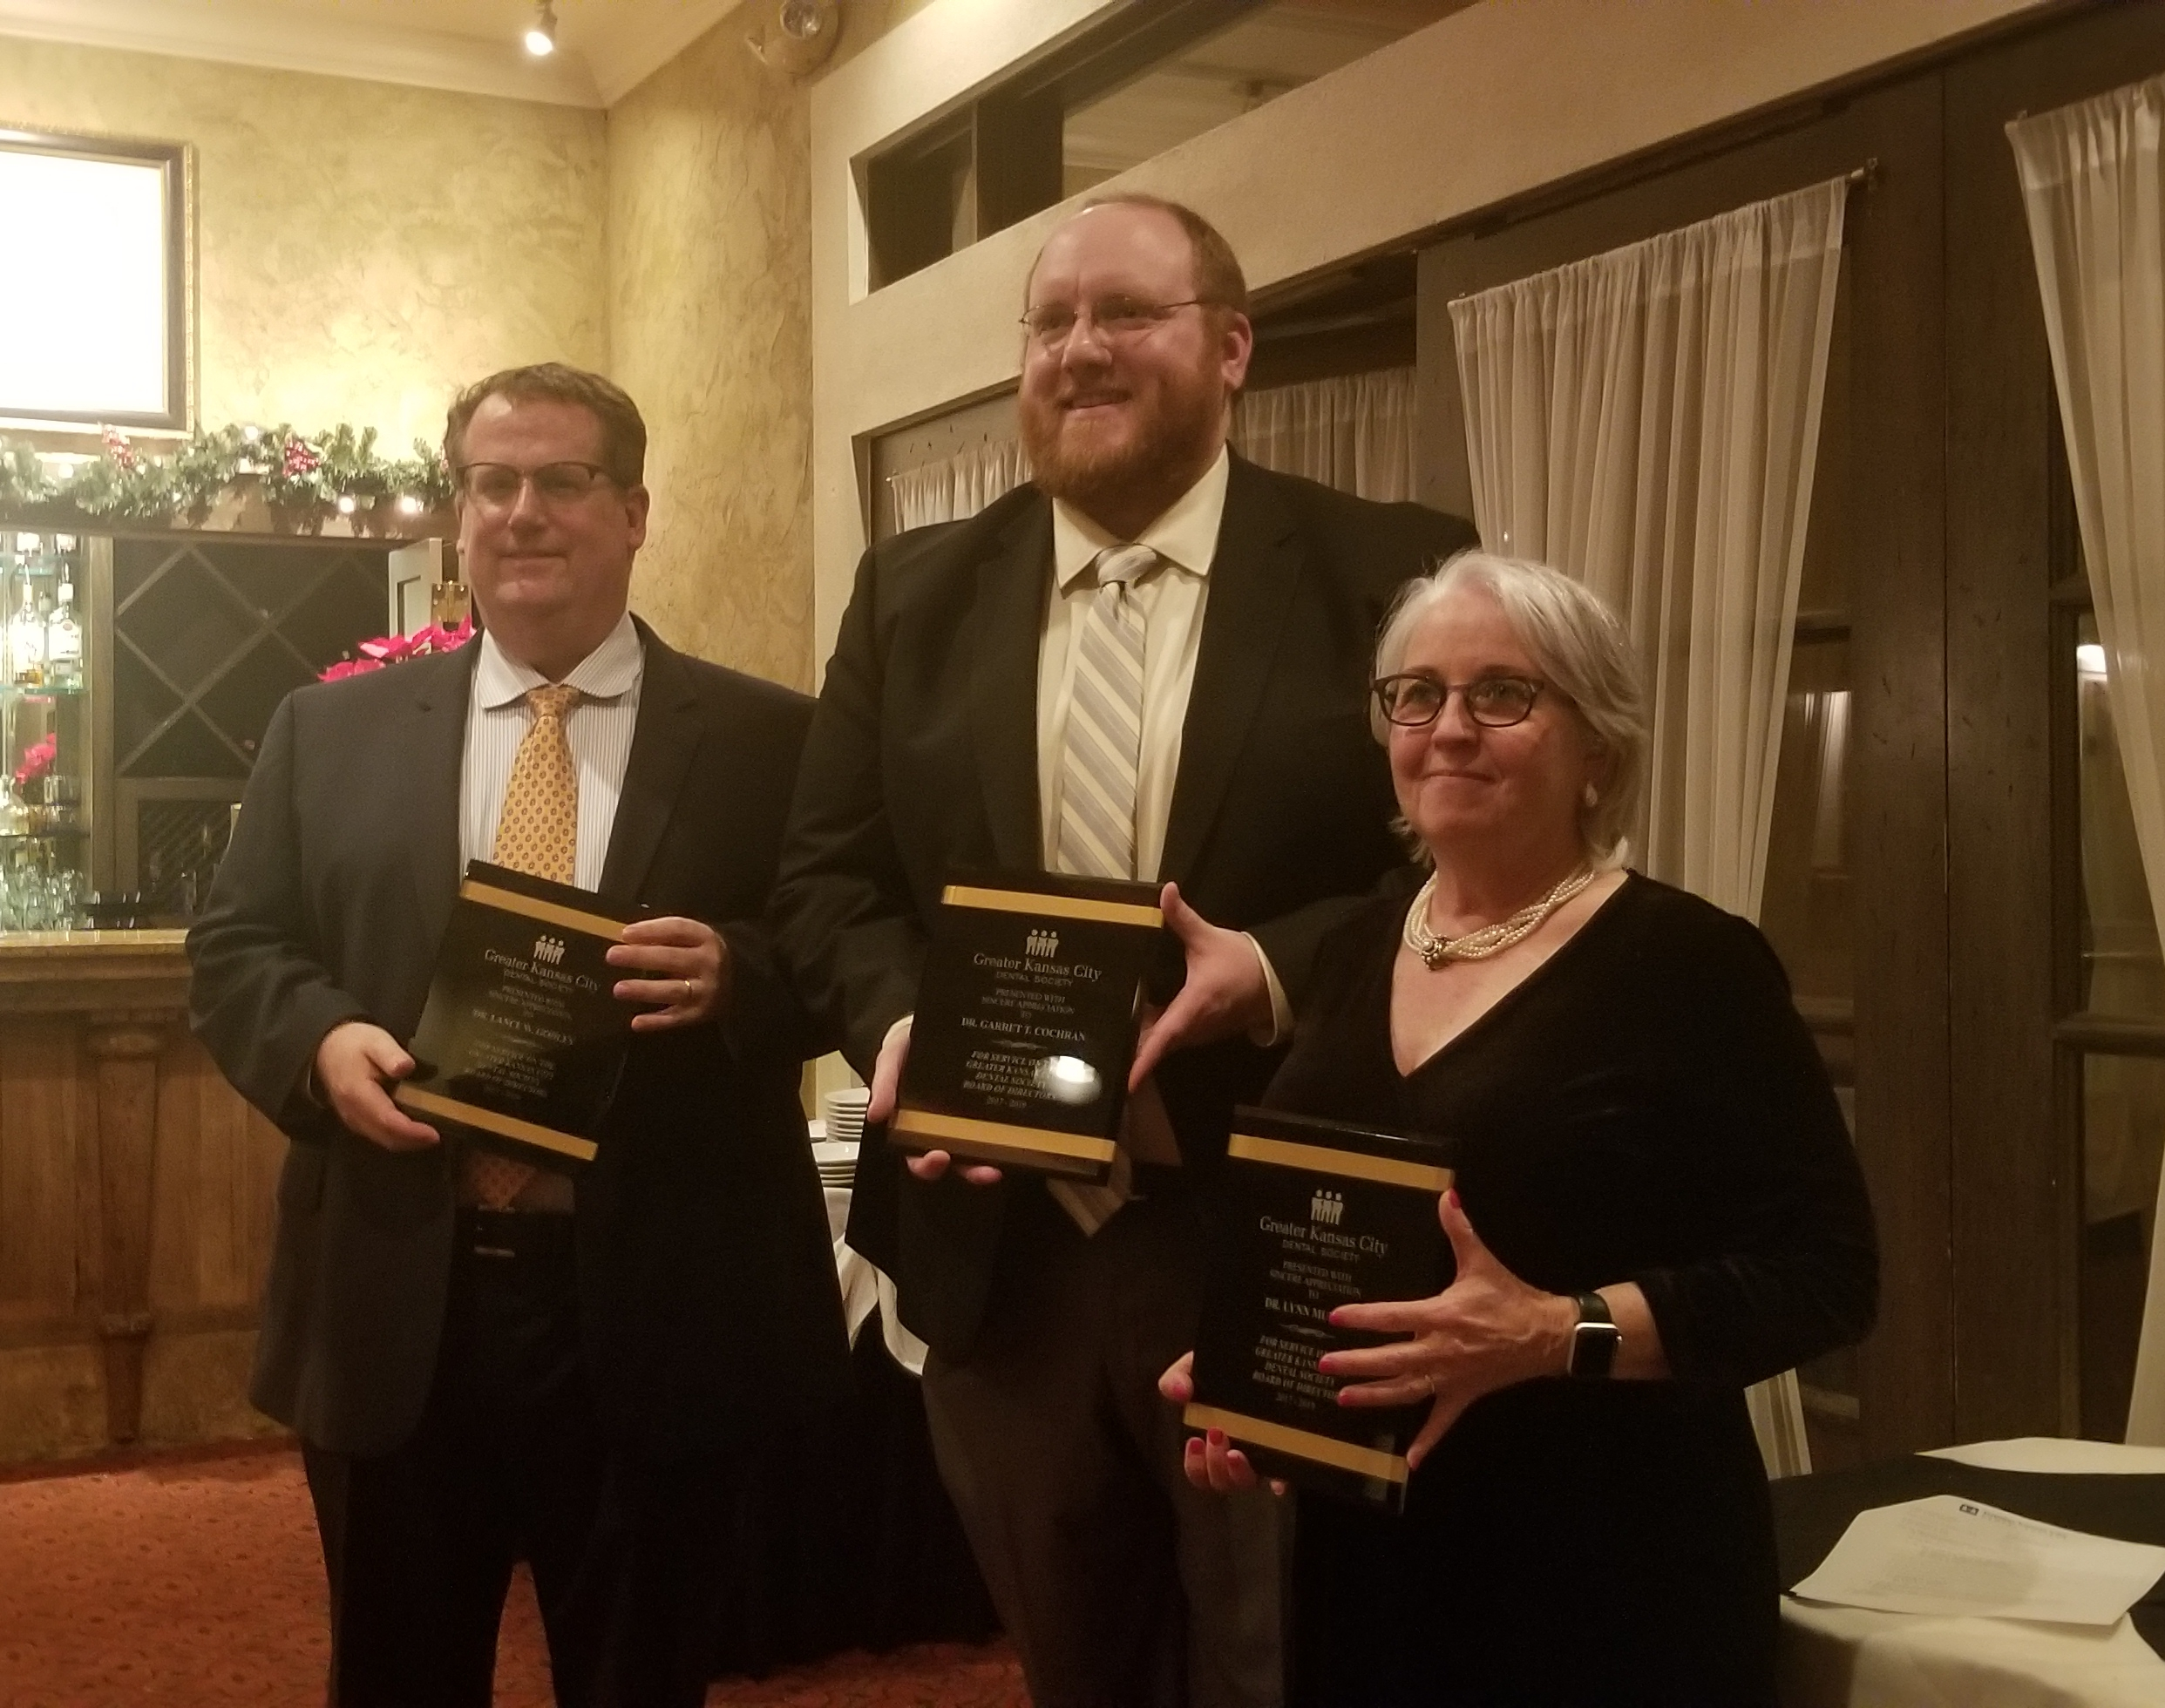 Three people with plaques